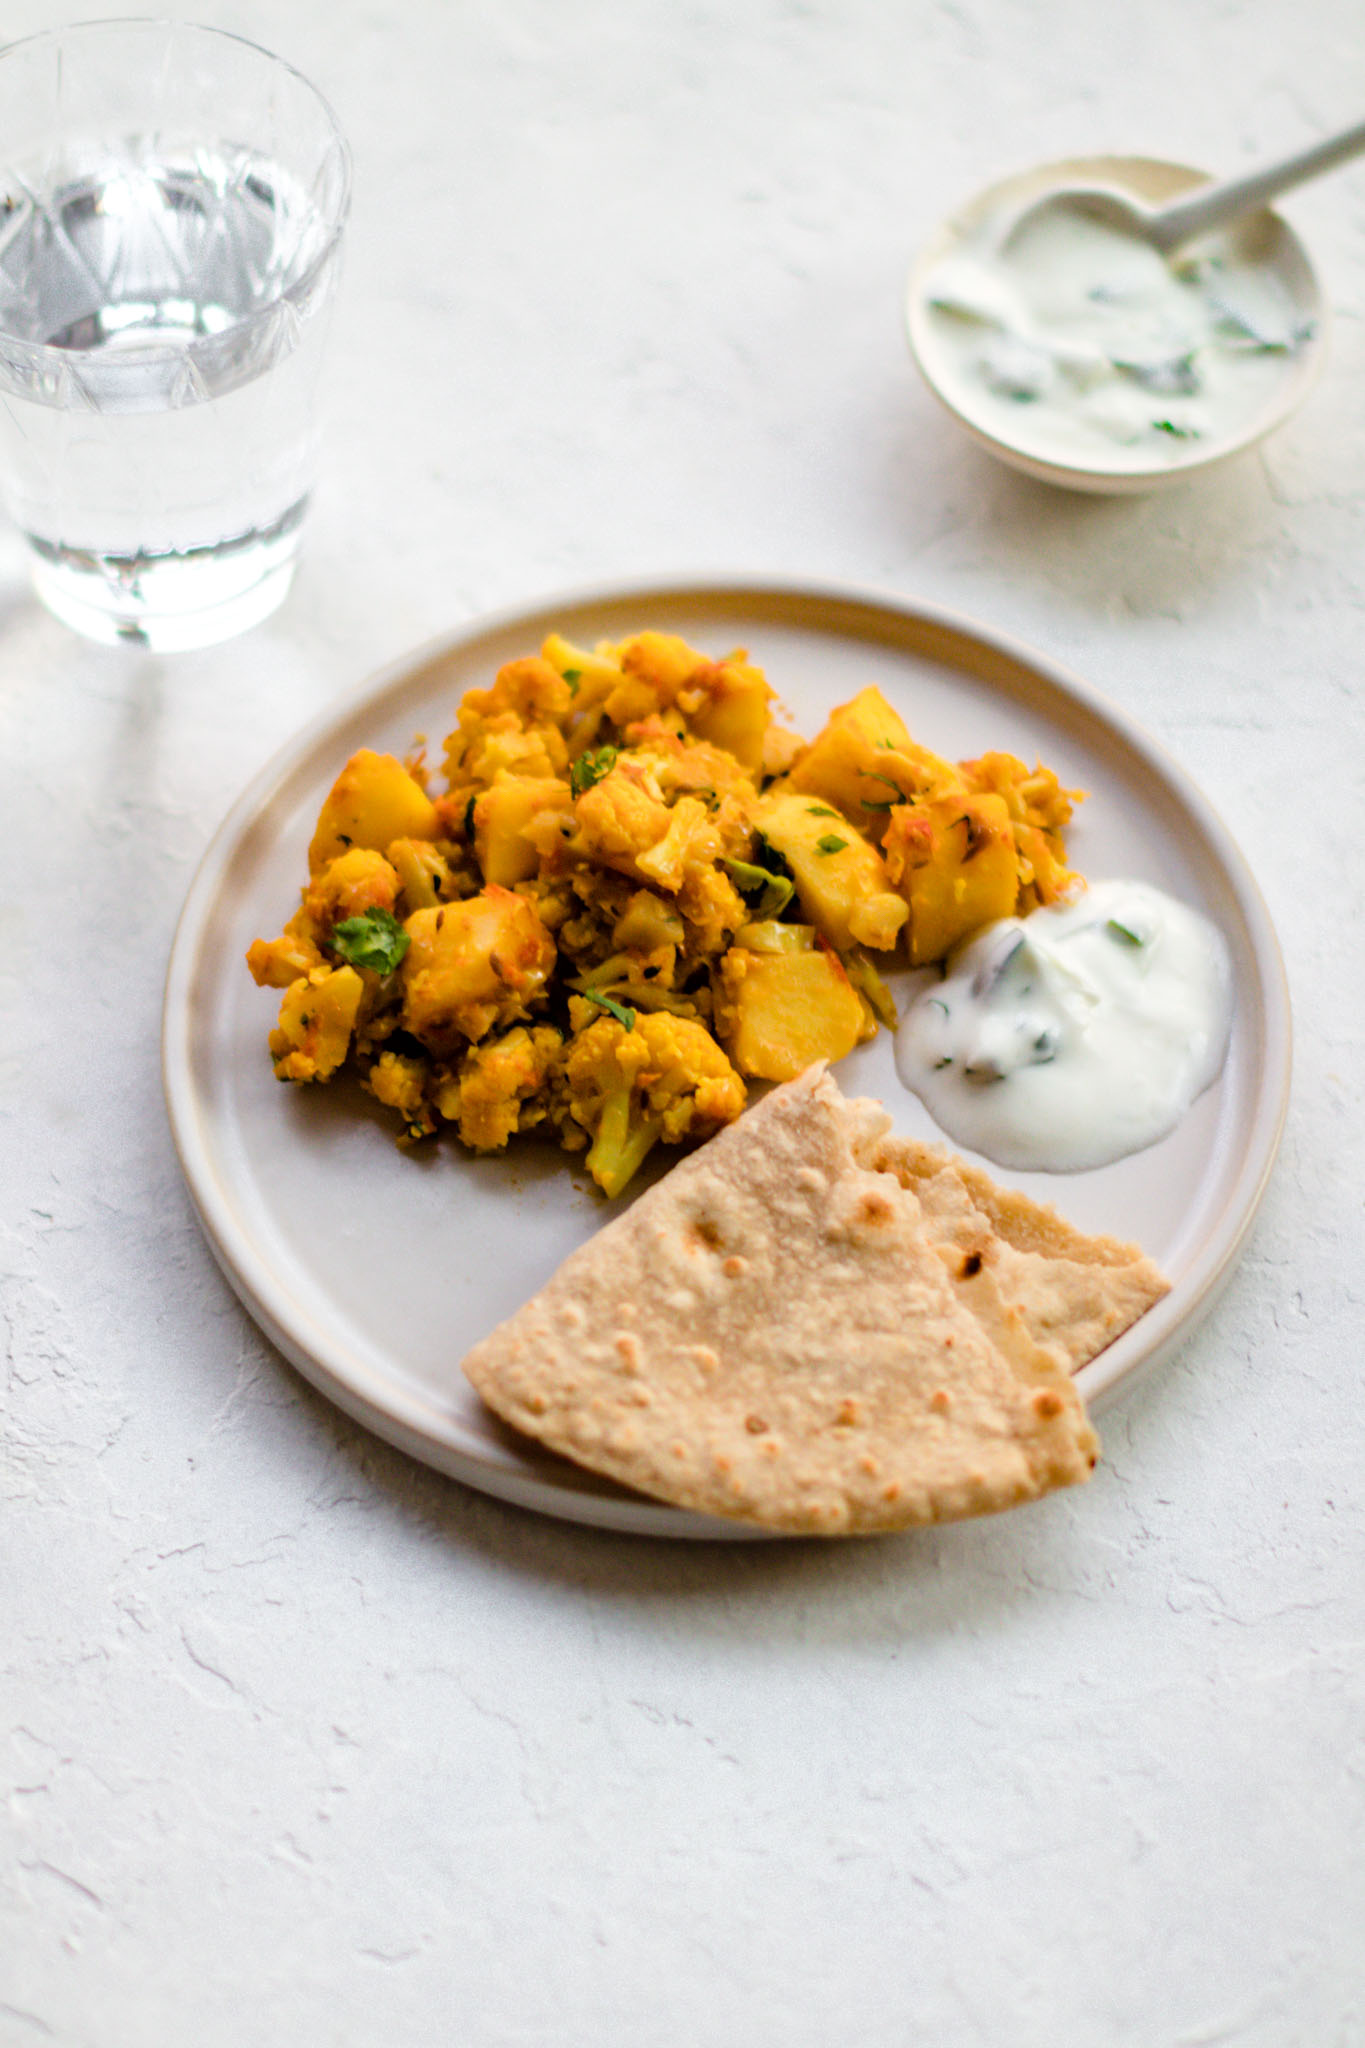 A round plate with Aloo Gobi, raita and a piece of roti.